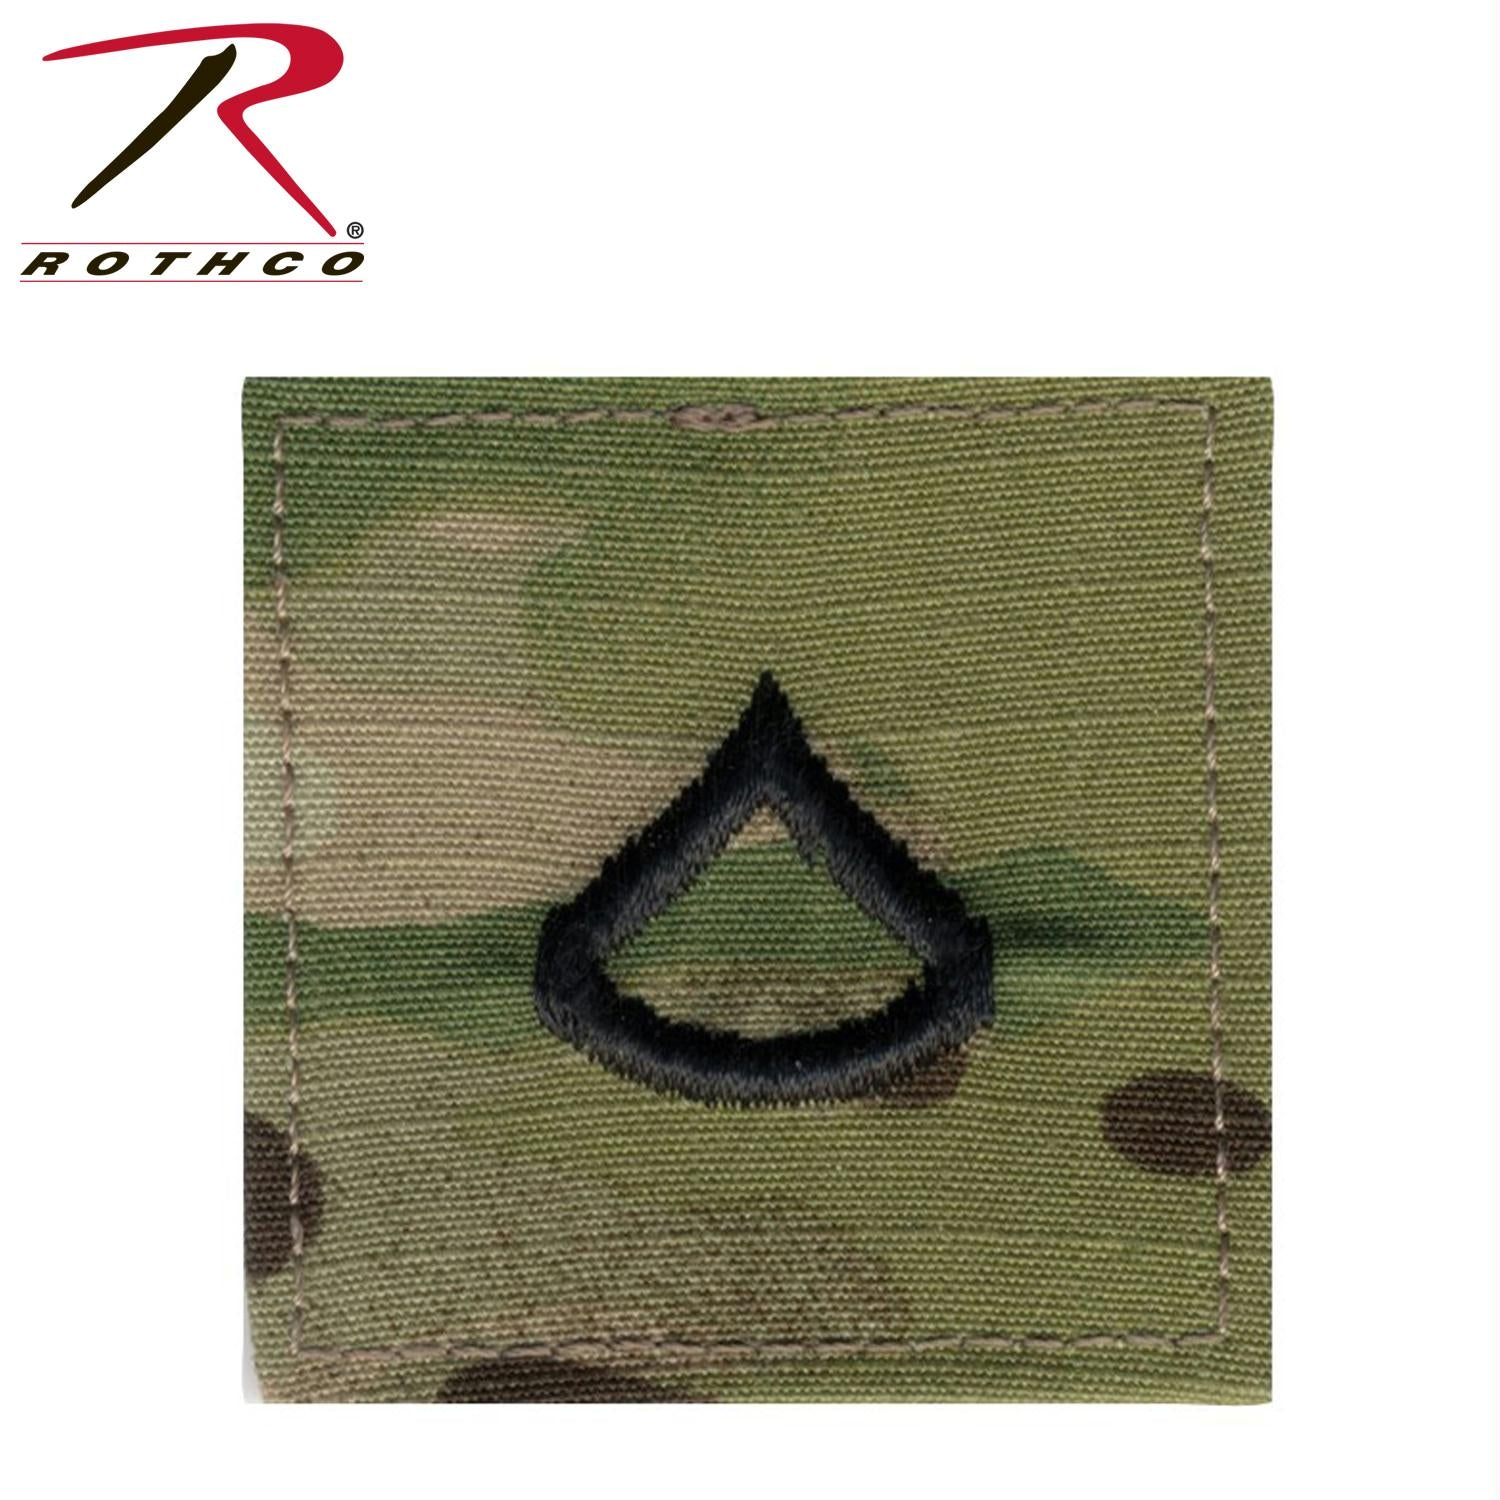 Official U.S. Made Embroidered Rank Insignia - Private 1st Class - MultiCam